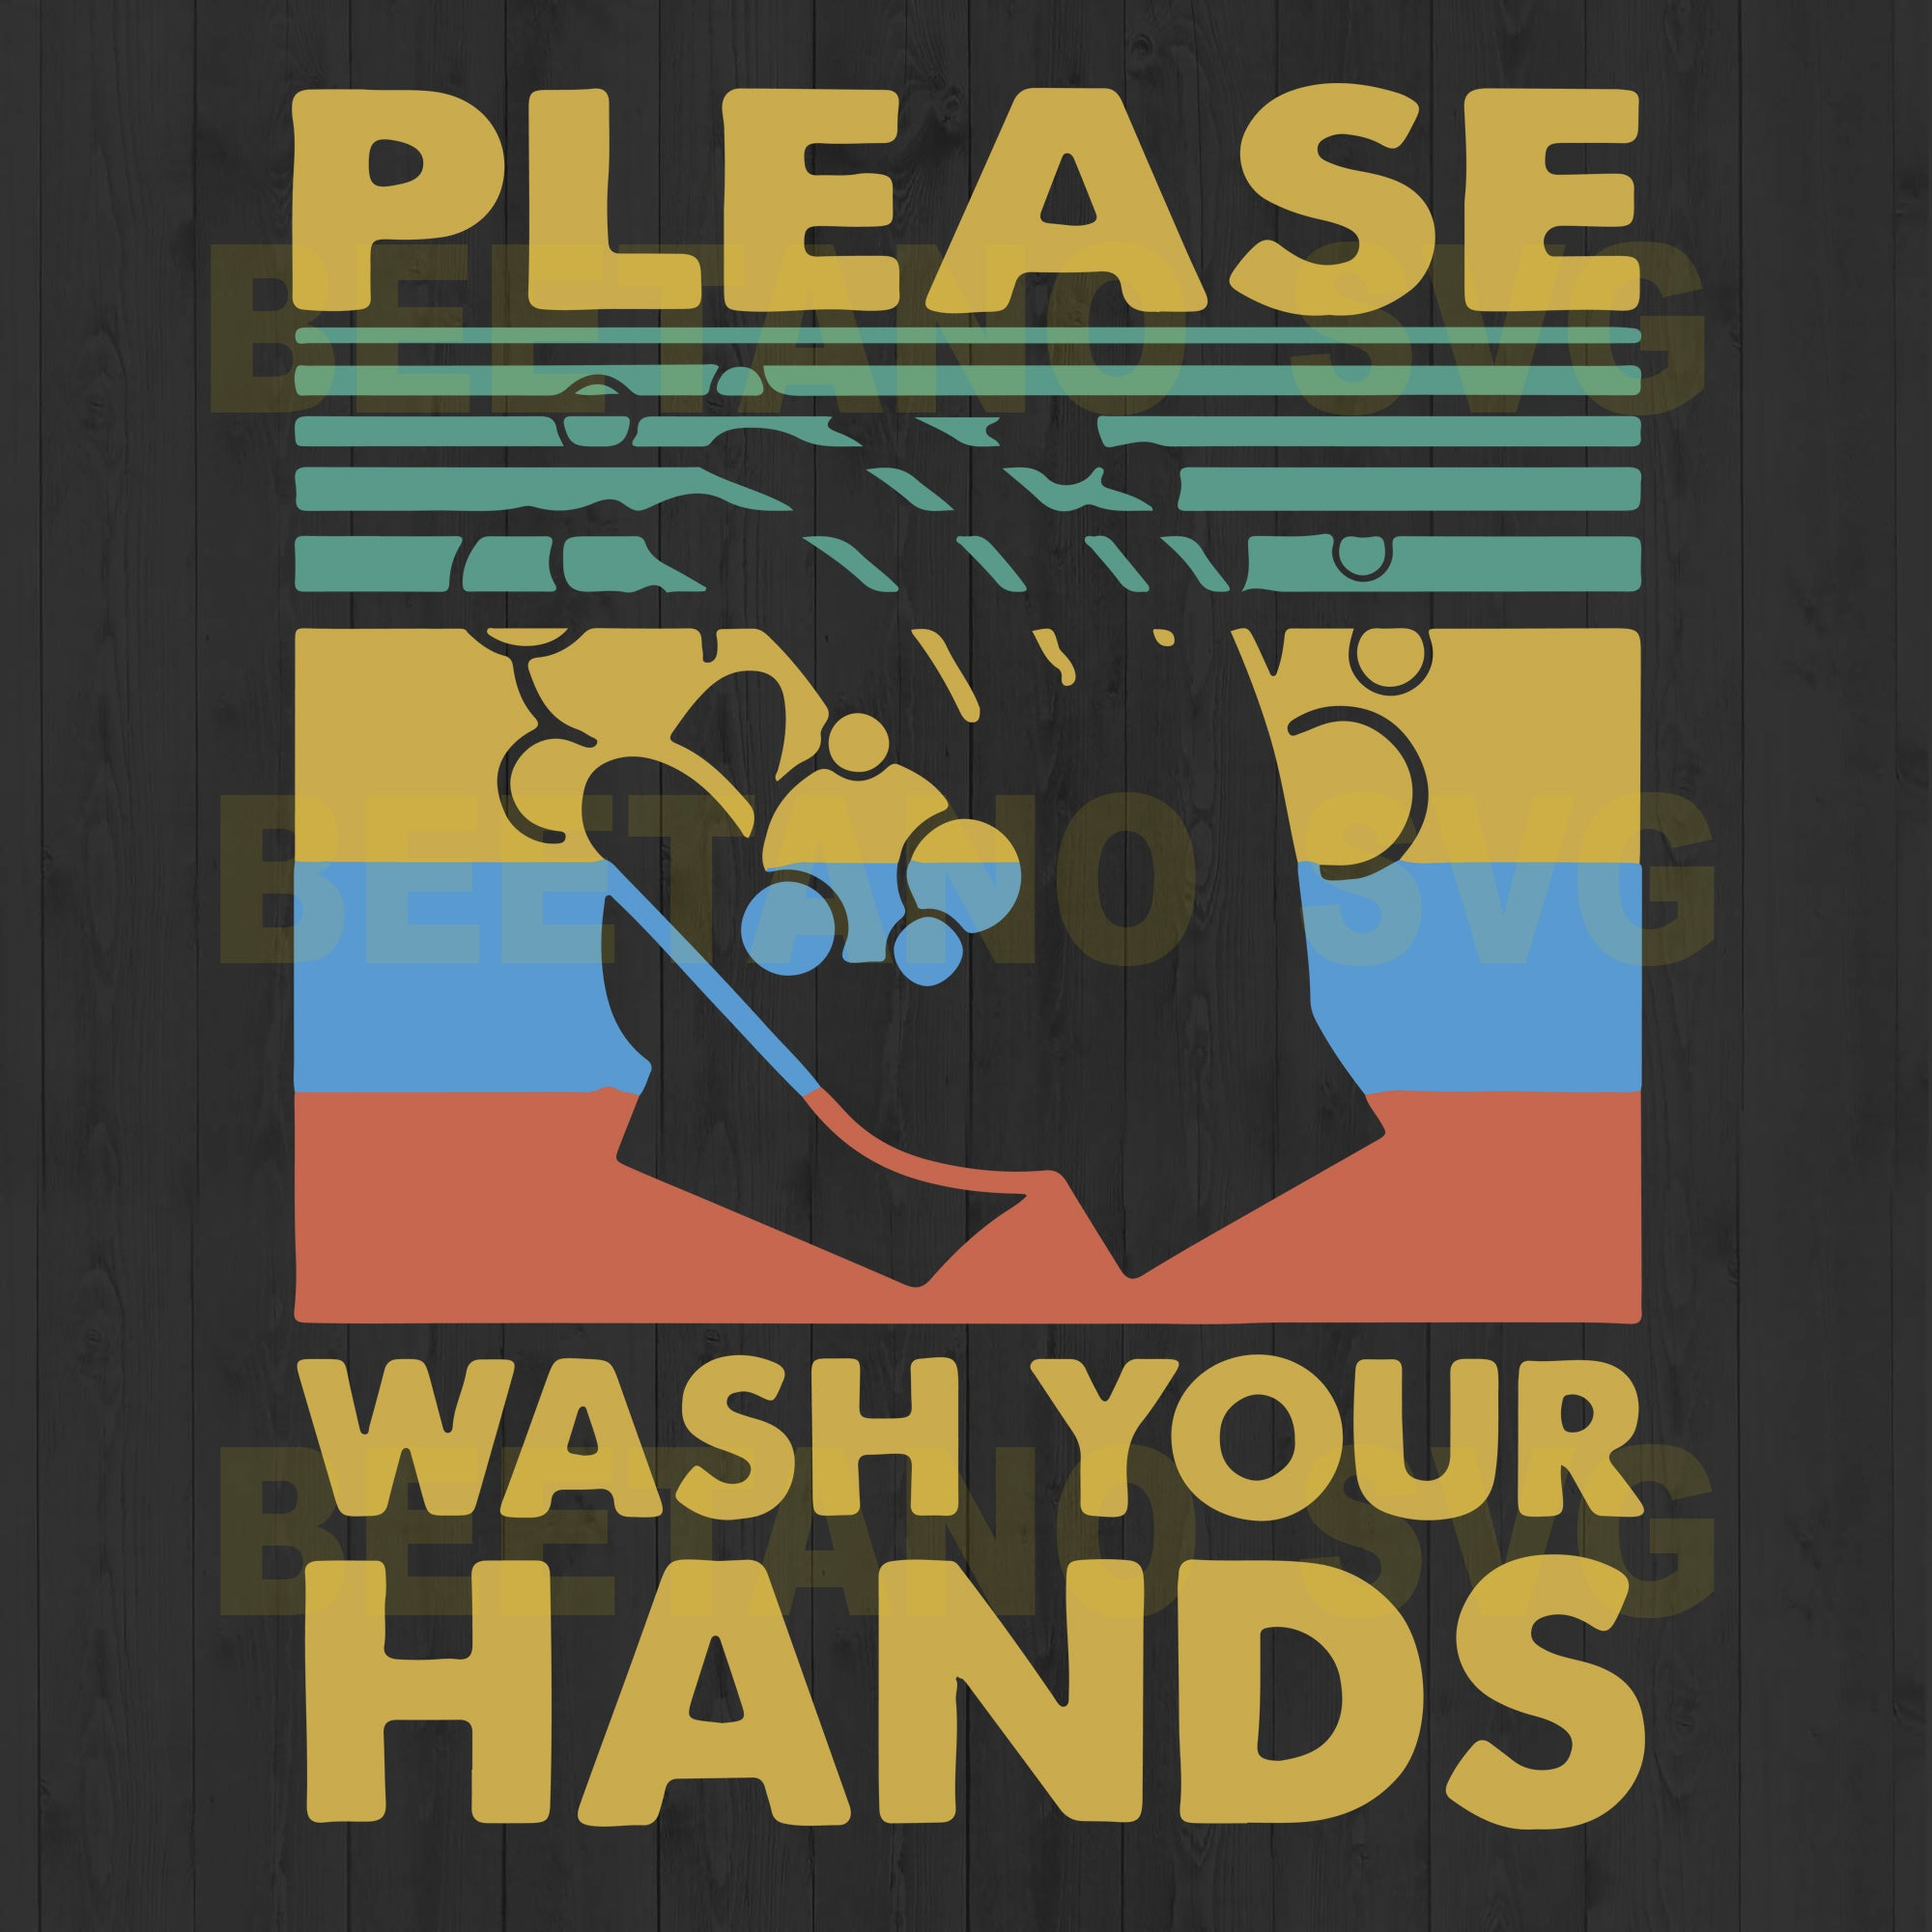 Please Wash Your Hands Svg Files, Wash Your Hands Svg, Wash Hands Files For Download